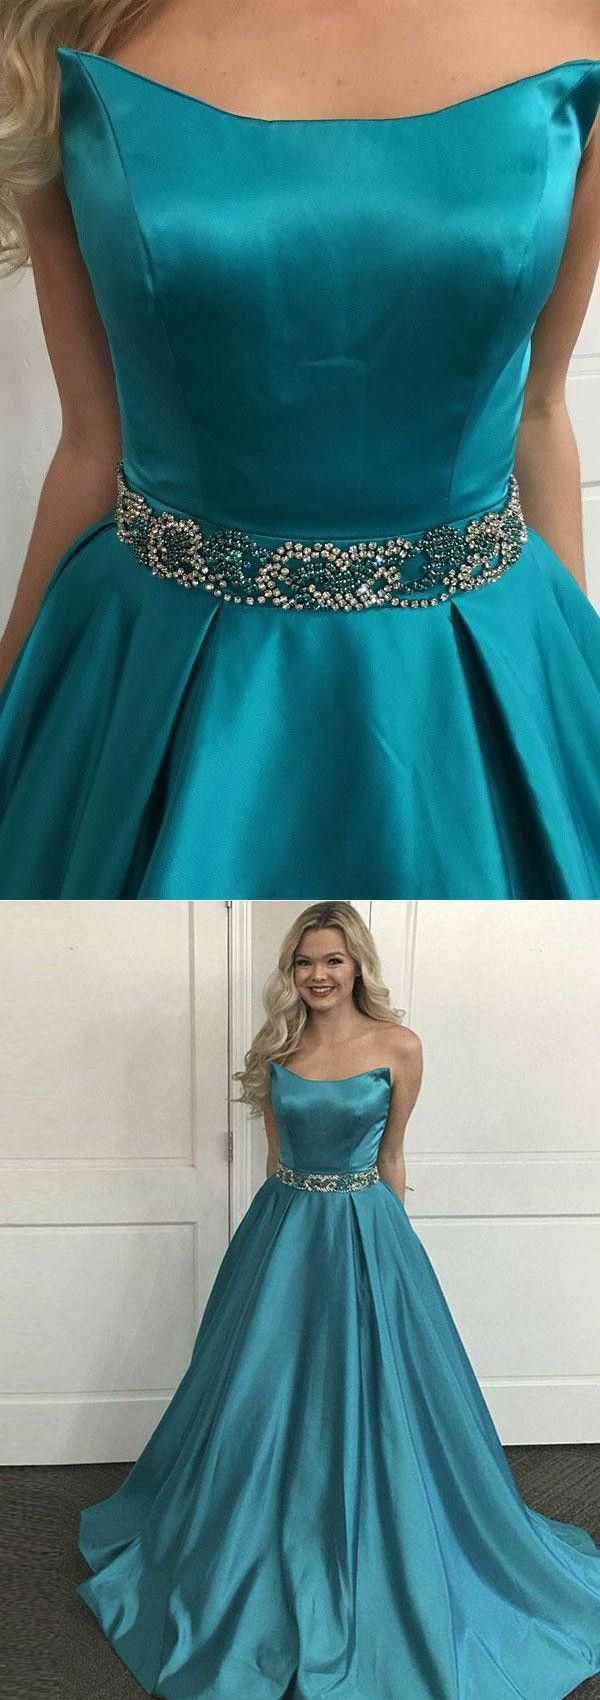 Customized comely simple prom dresses prom dresses modest